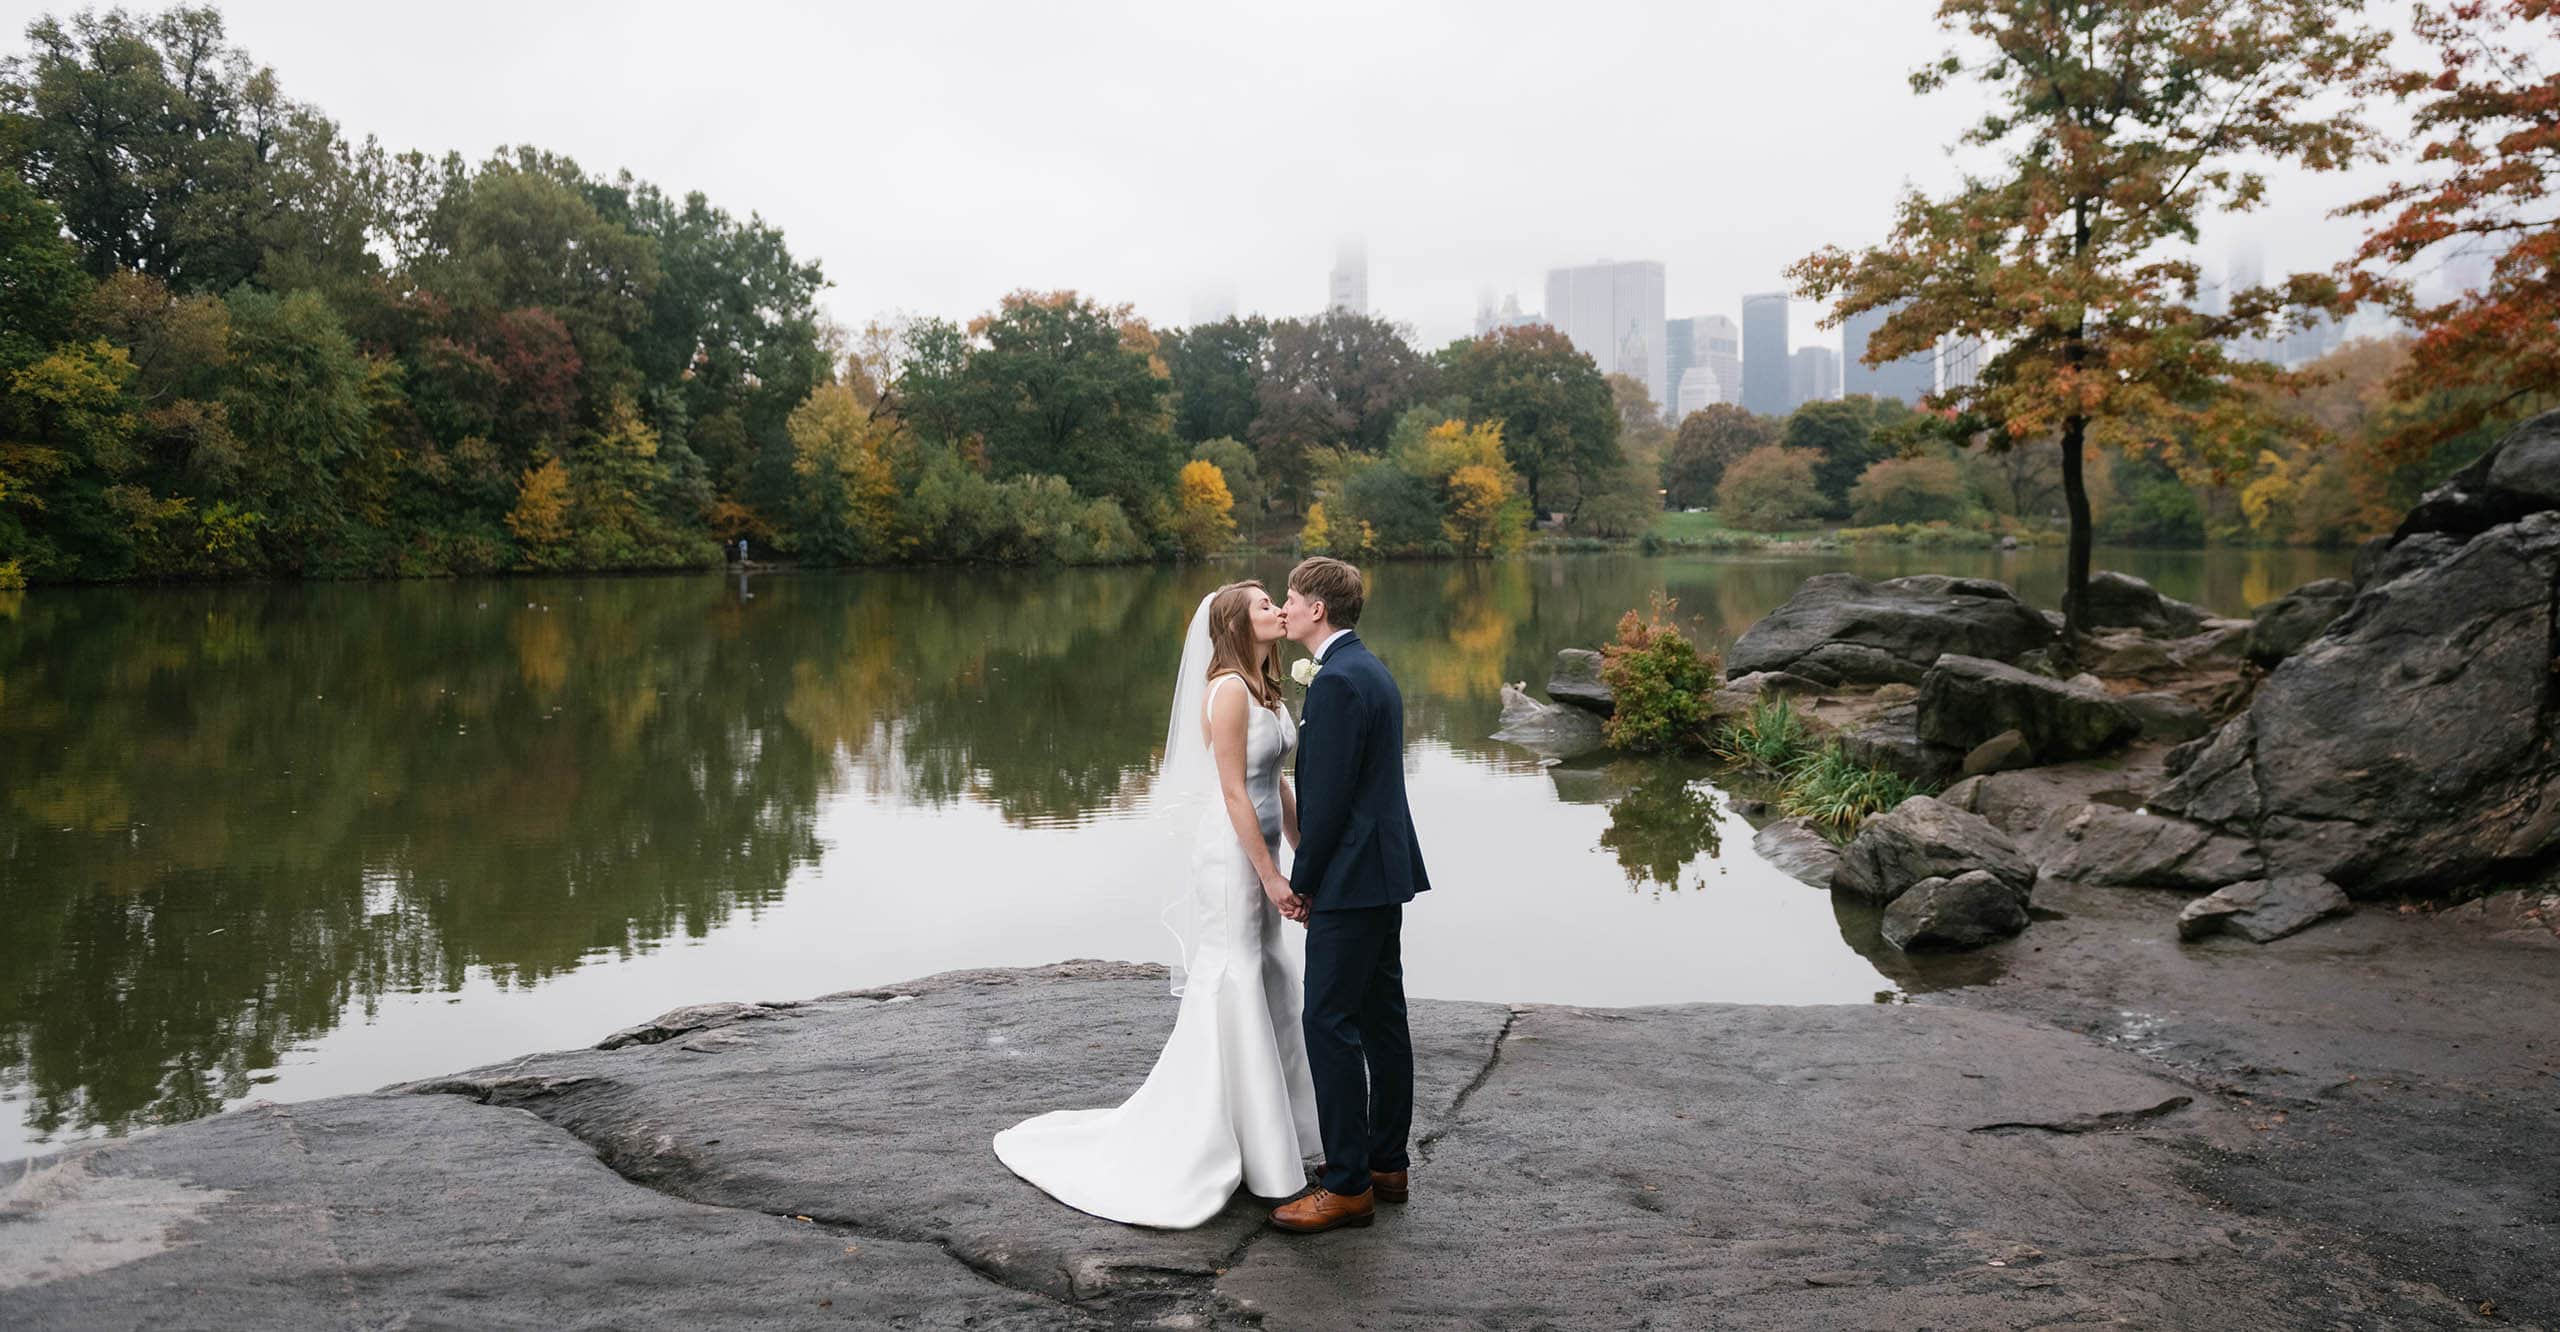 where to elope in NYC: NYC elopement locations